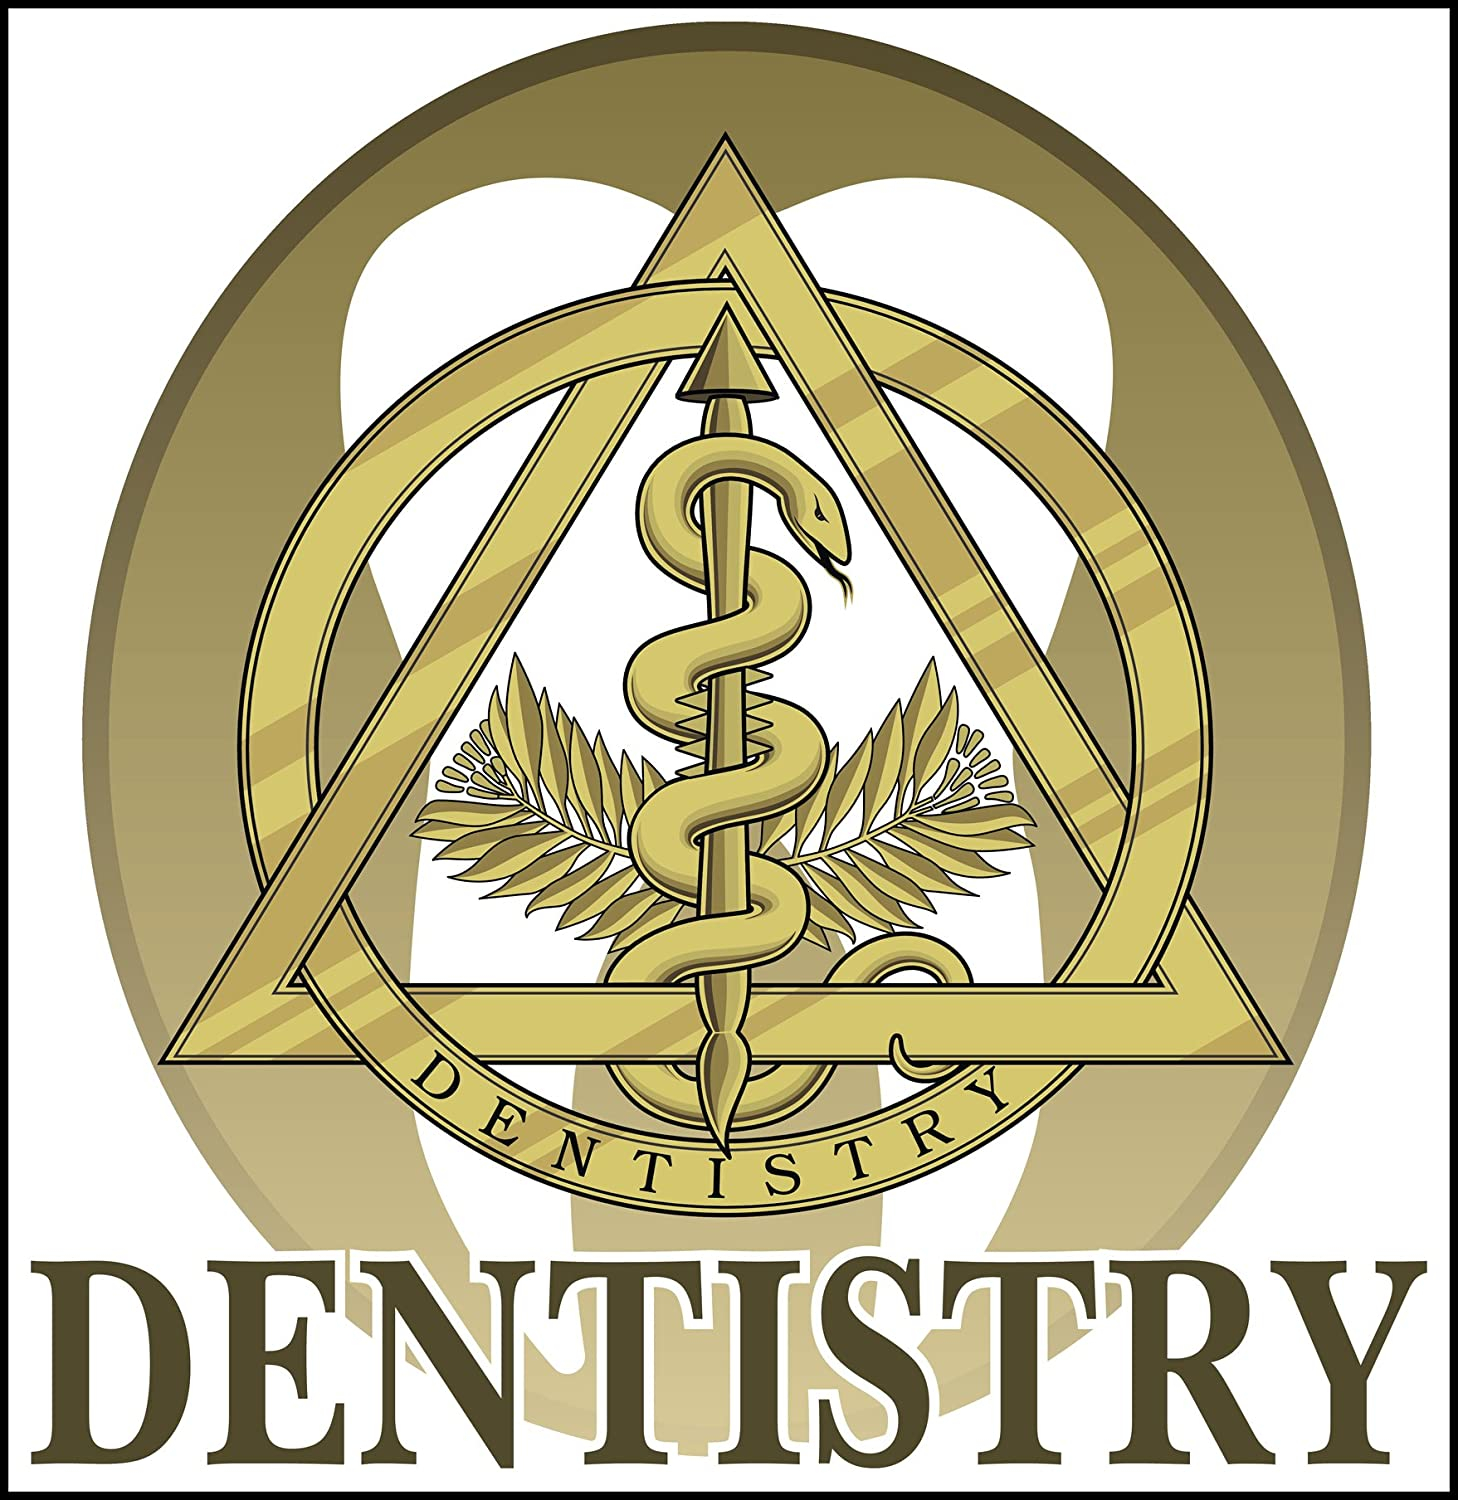 Amazon Abstract Dentistry Professional Healthcare Gold Symbol